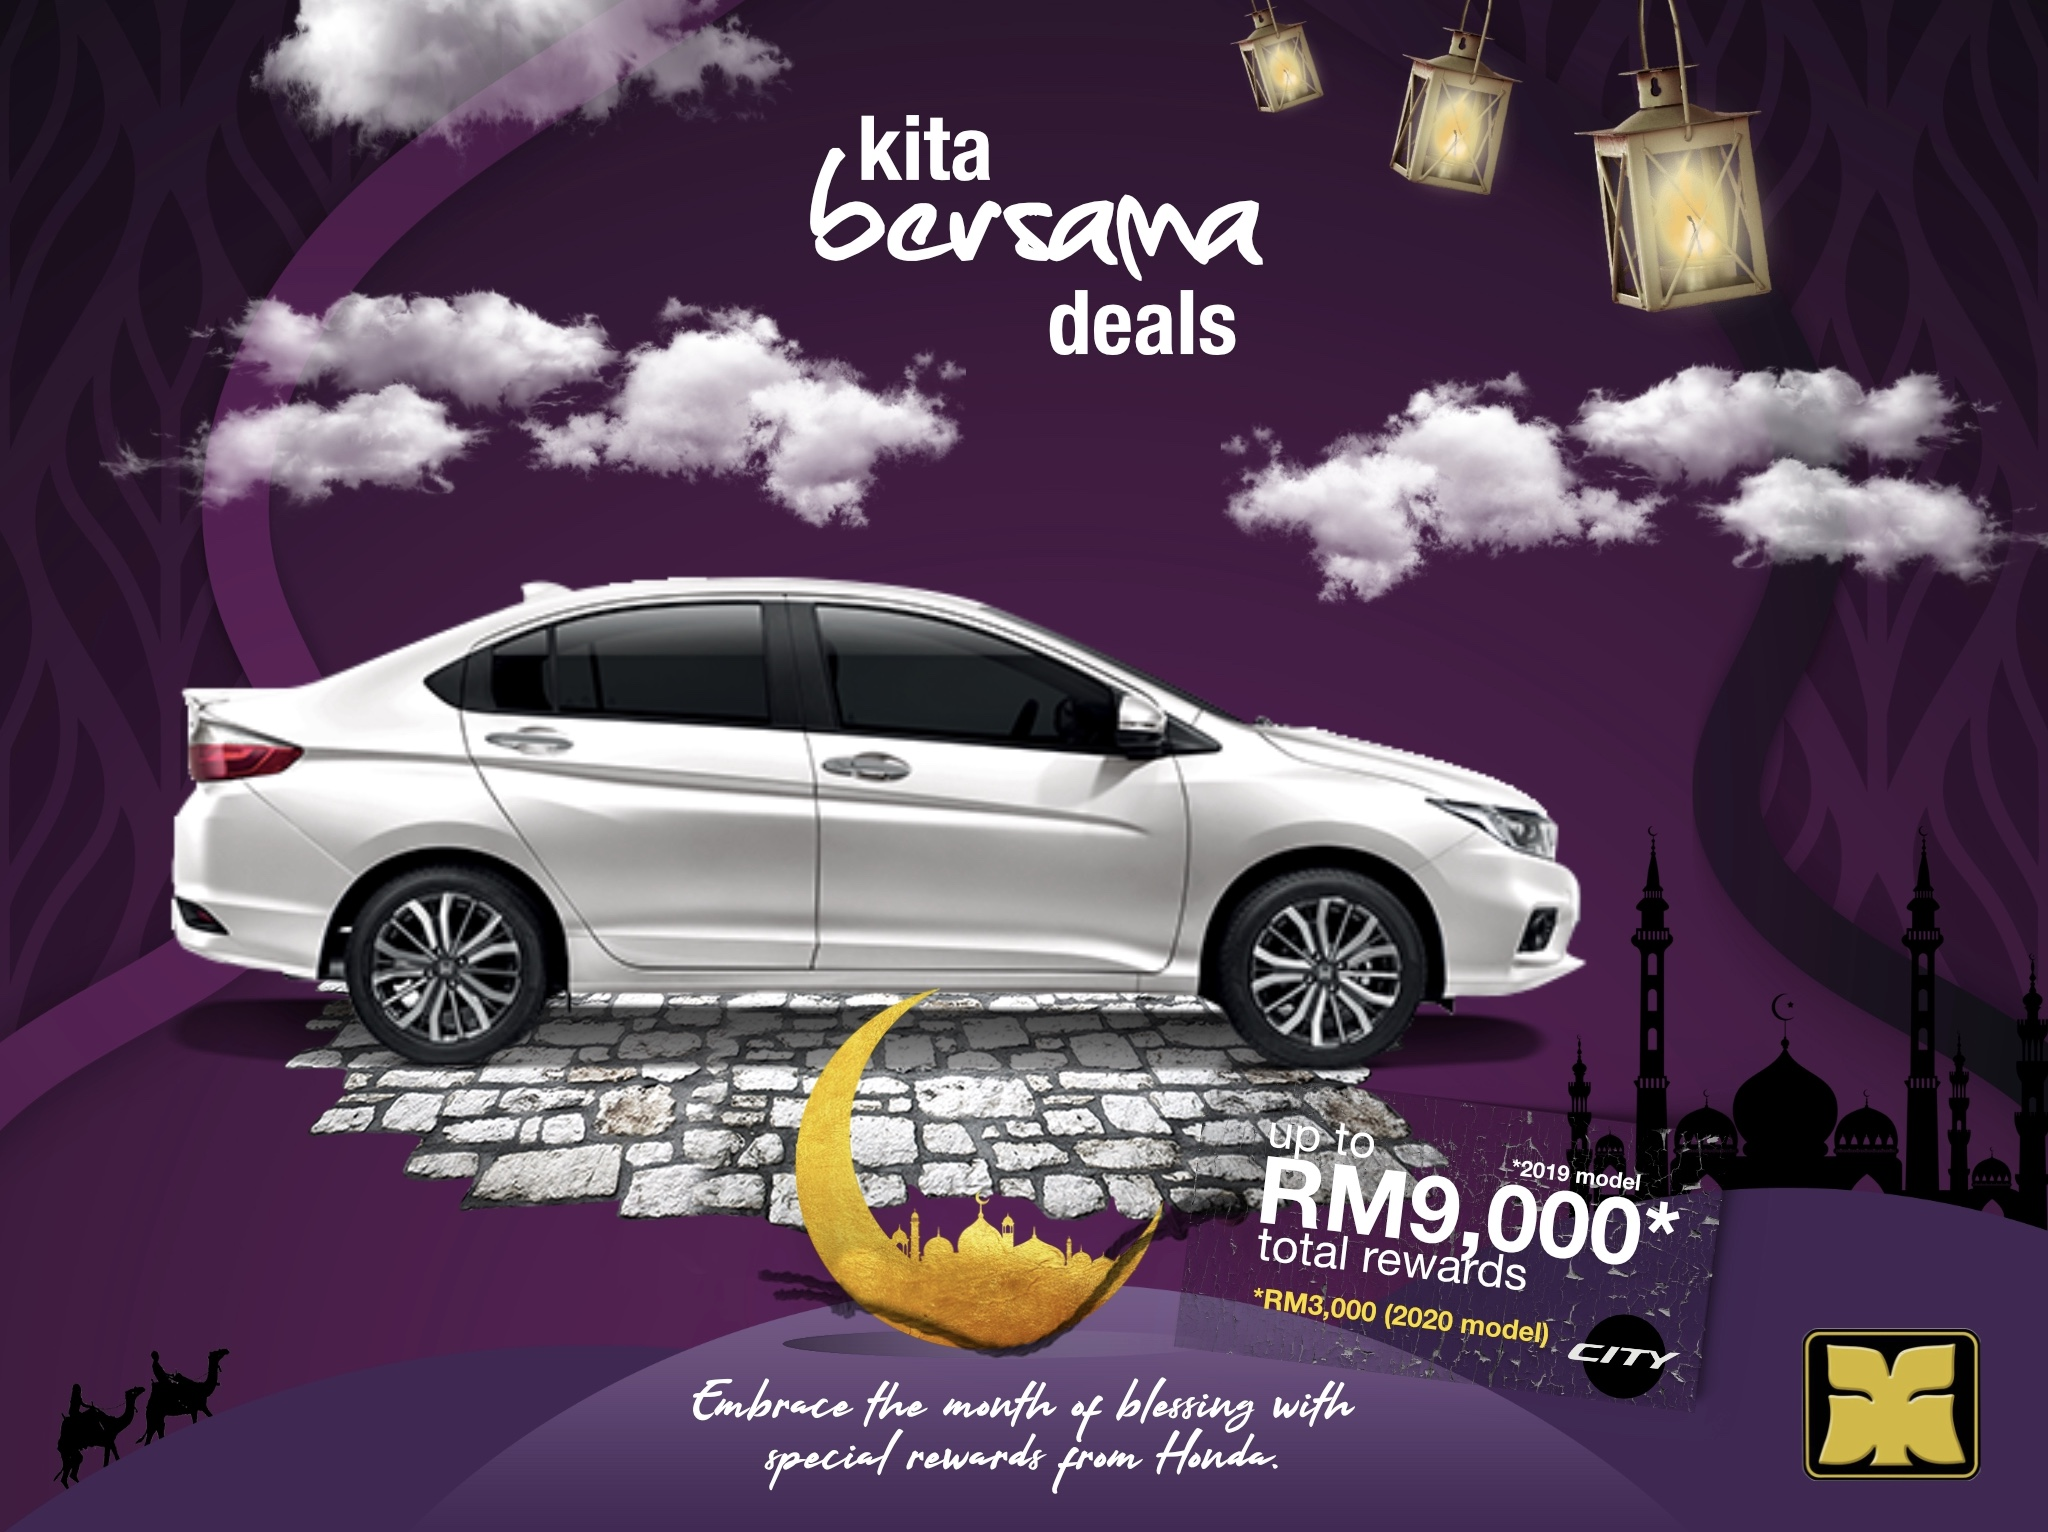 Month of Blessing Kita Bersama Deals Yong Ming Honda City